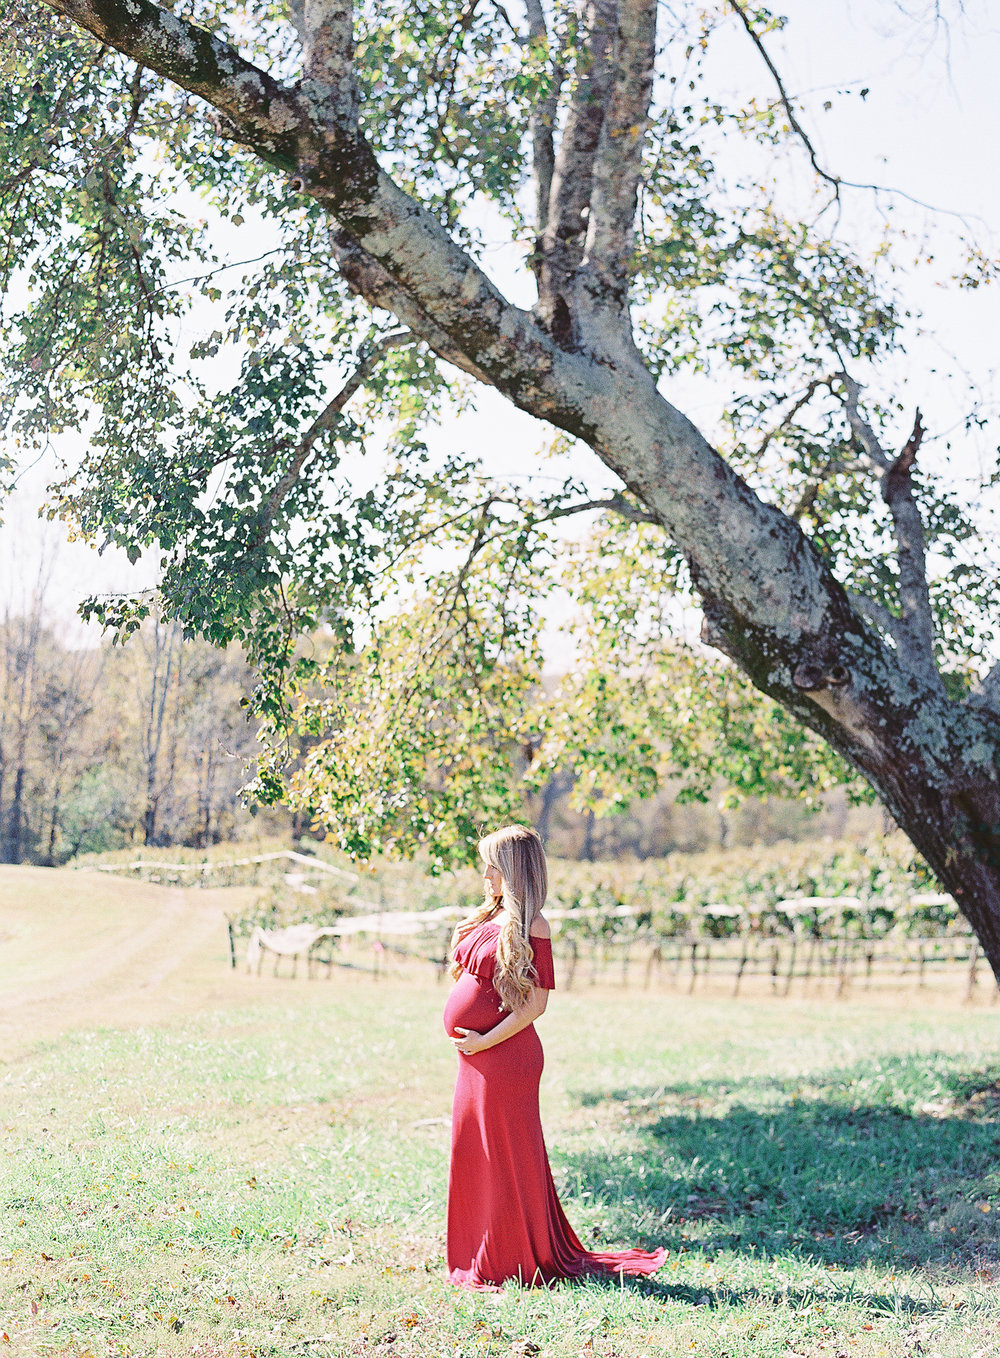 dahlonega-georgia-atlanta-montaluce-winery-wedding-family-photographer-hannah-forsberg-10.jpg